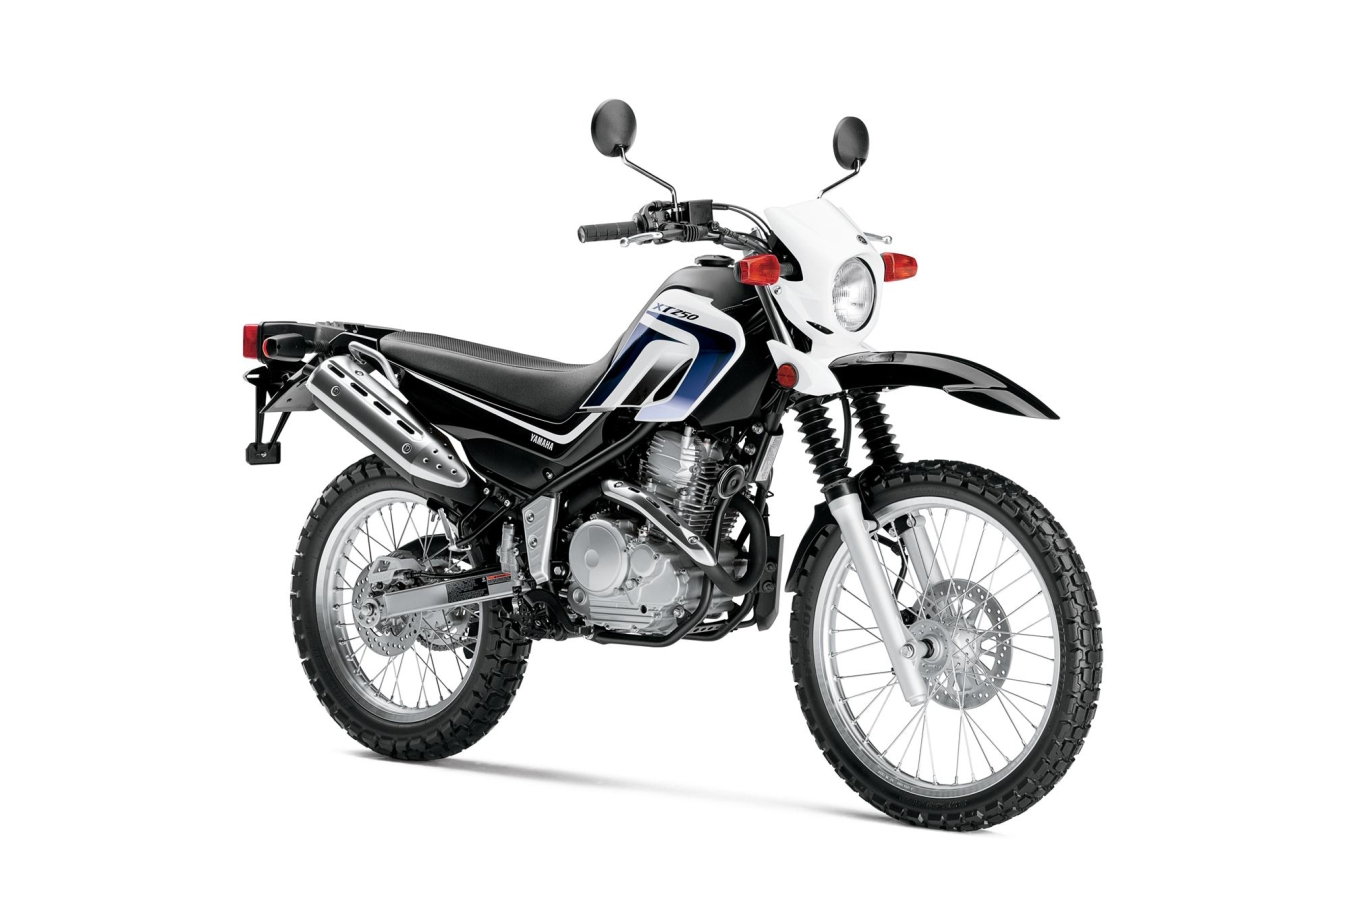 Yamaha Xt250 Finally Gets Fuel Injection